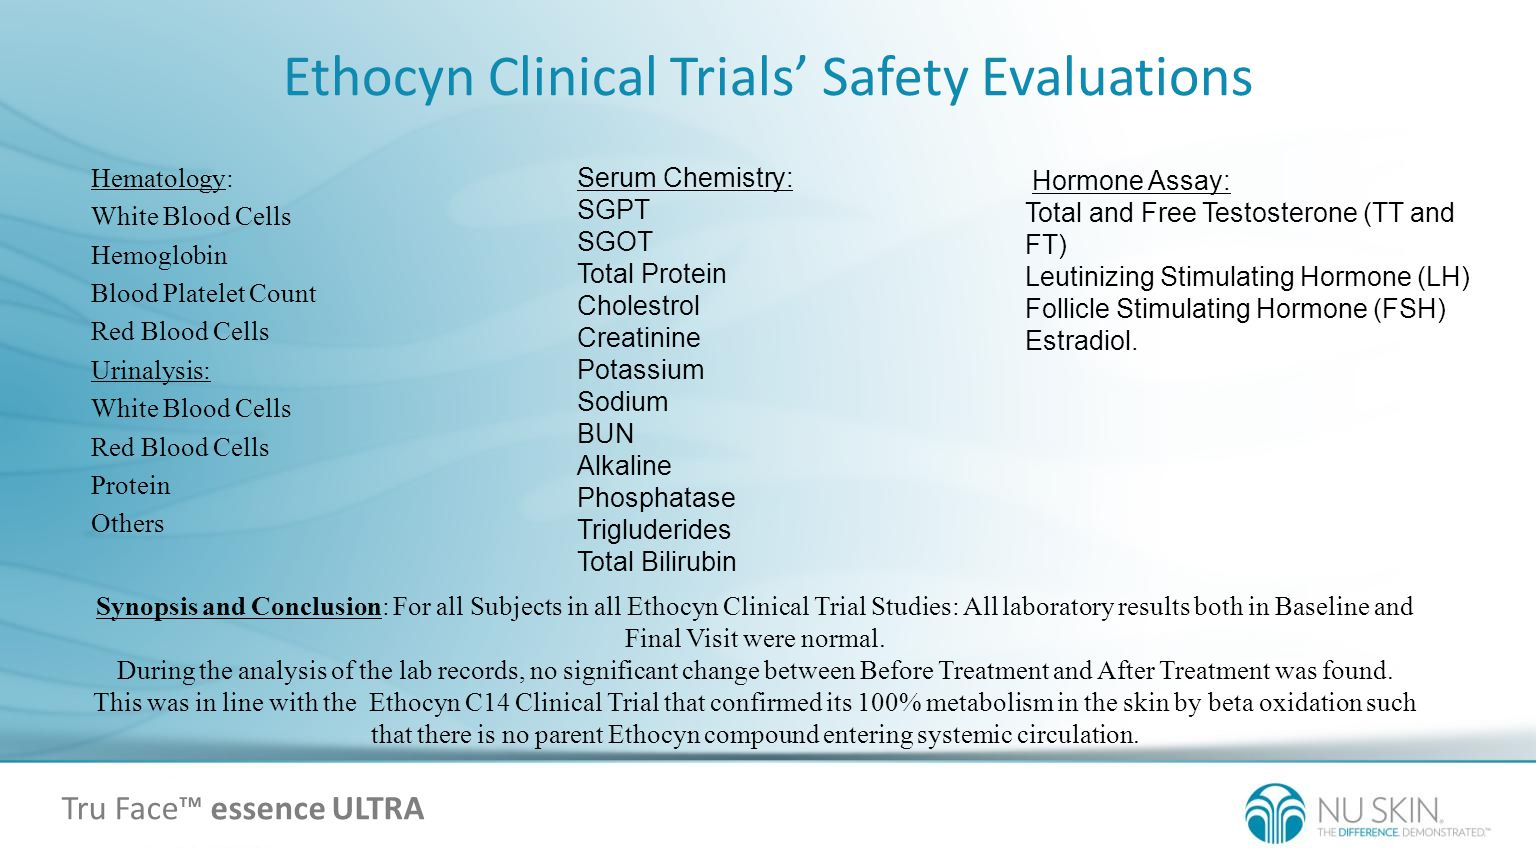 Ethocyn Clinical Trials' Safety Evaluations